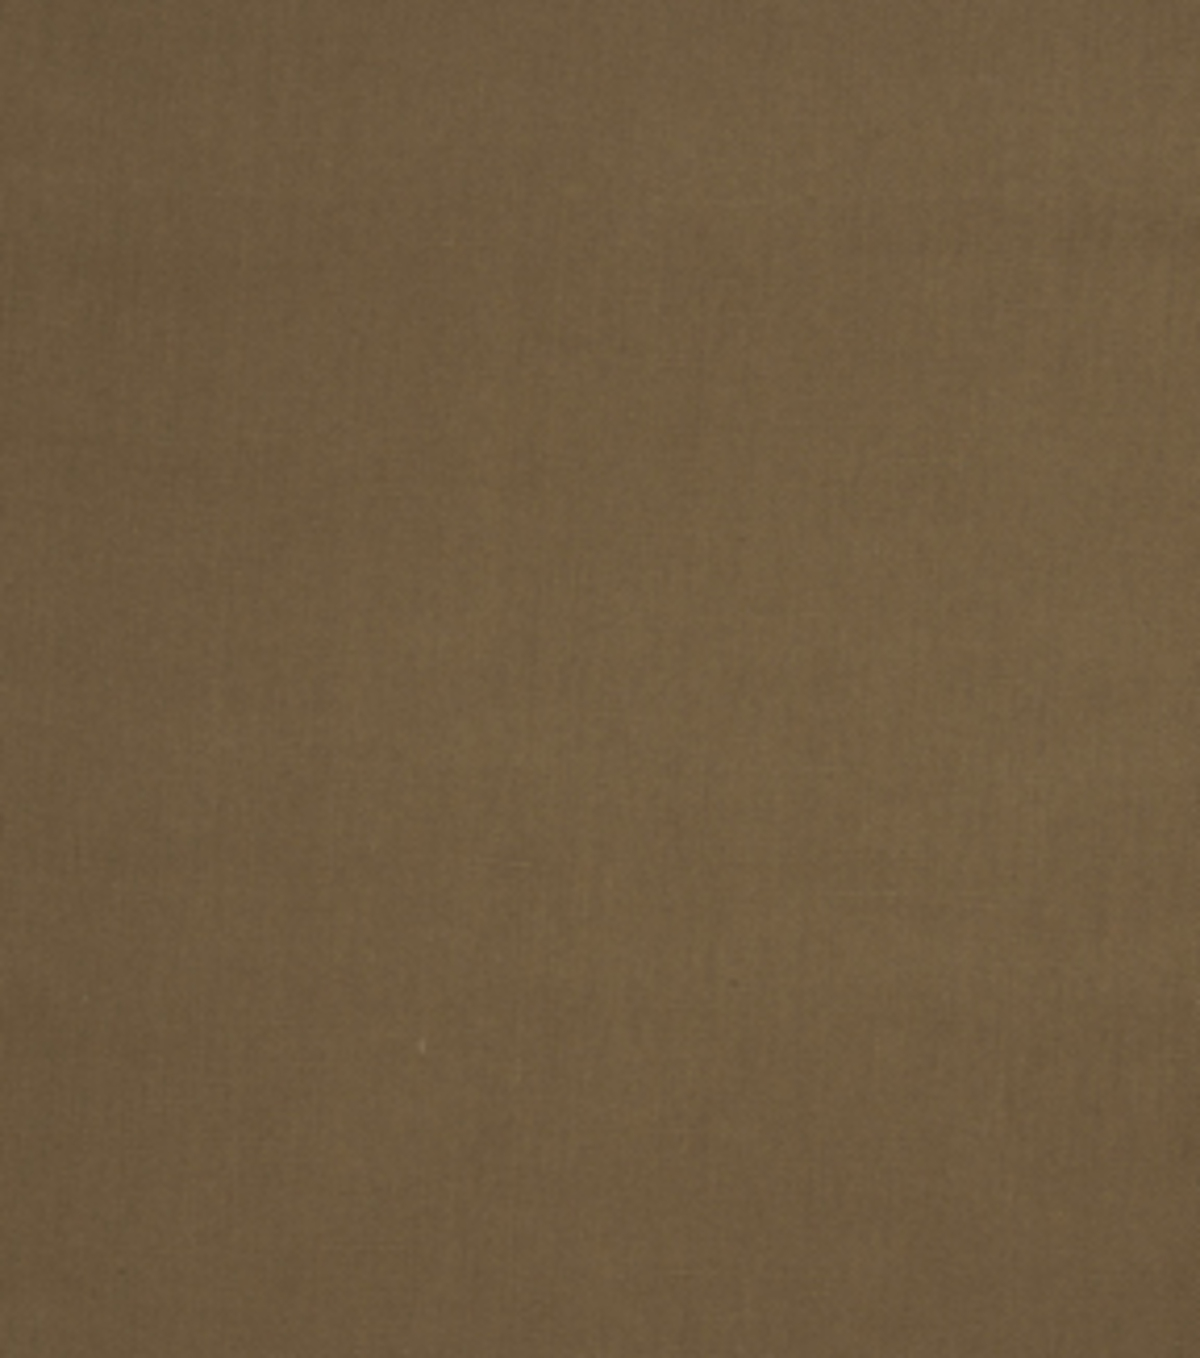 Home Decor 8\u0022x8\u0022 Fabric Swatch-Eaton Square Croissant Walnut